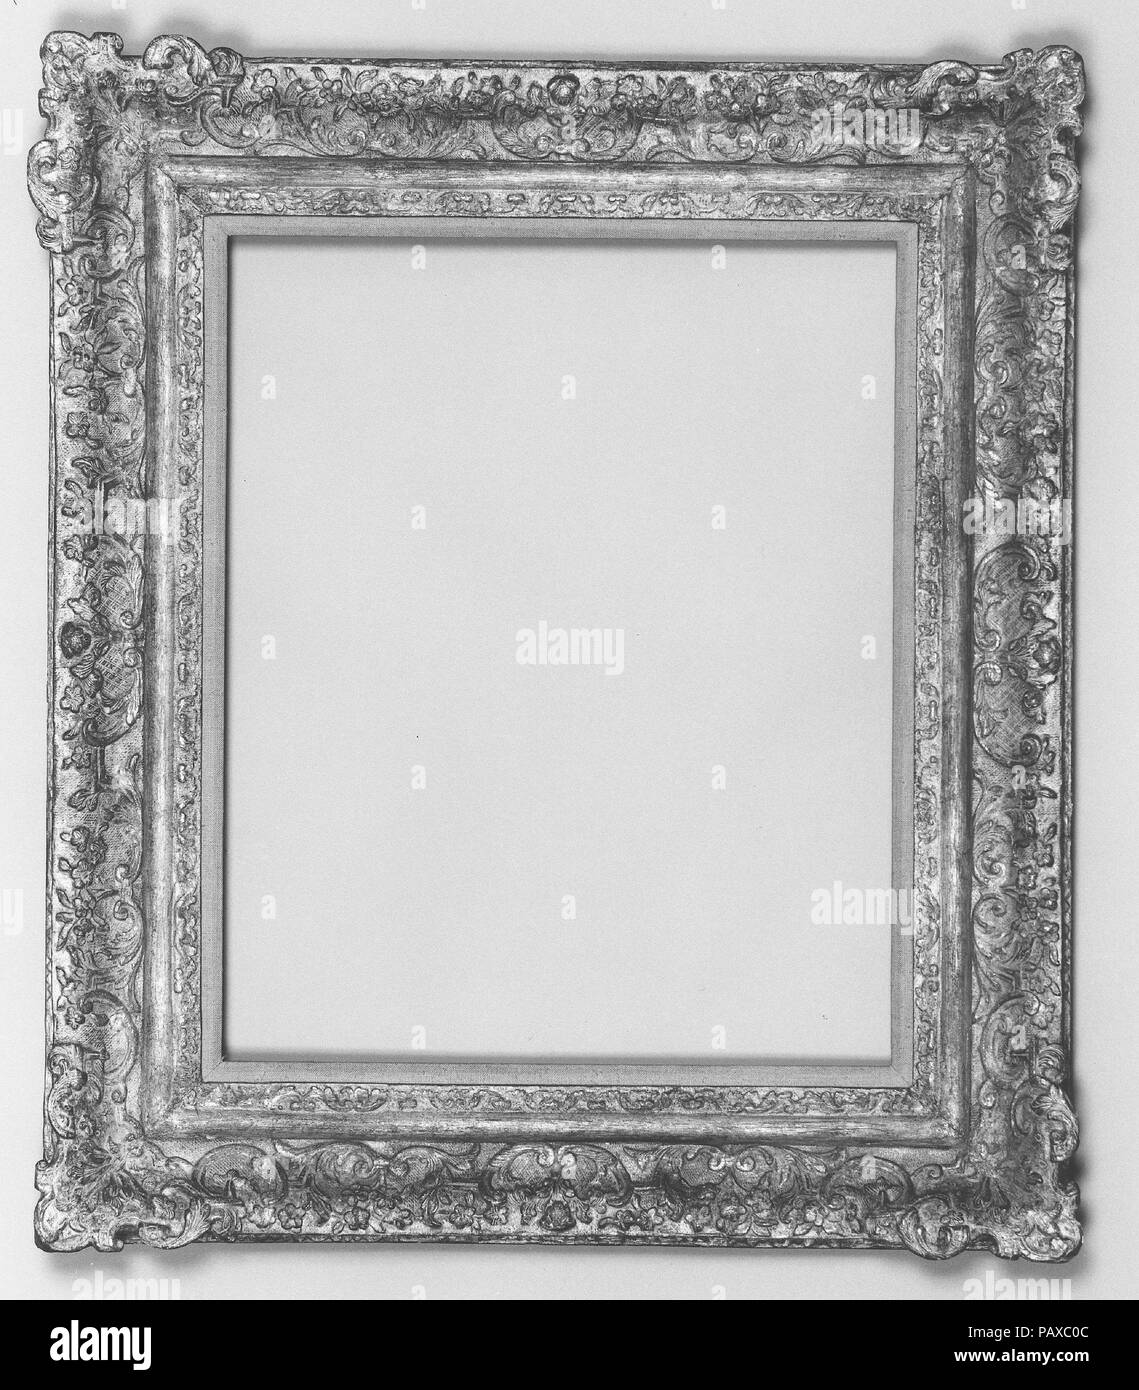 Louis XV Regency style frame. Culture: French. Dimensions: Overall ...